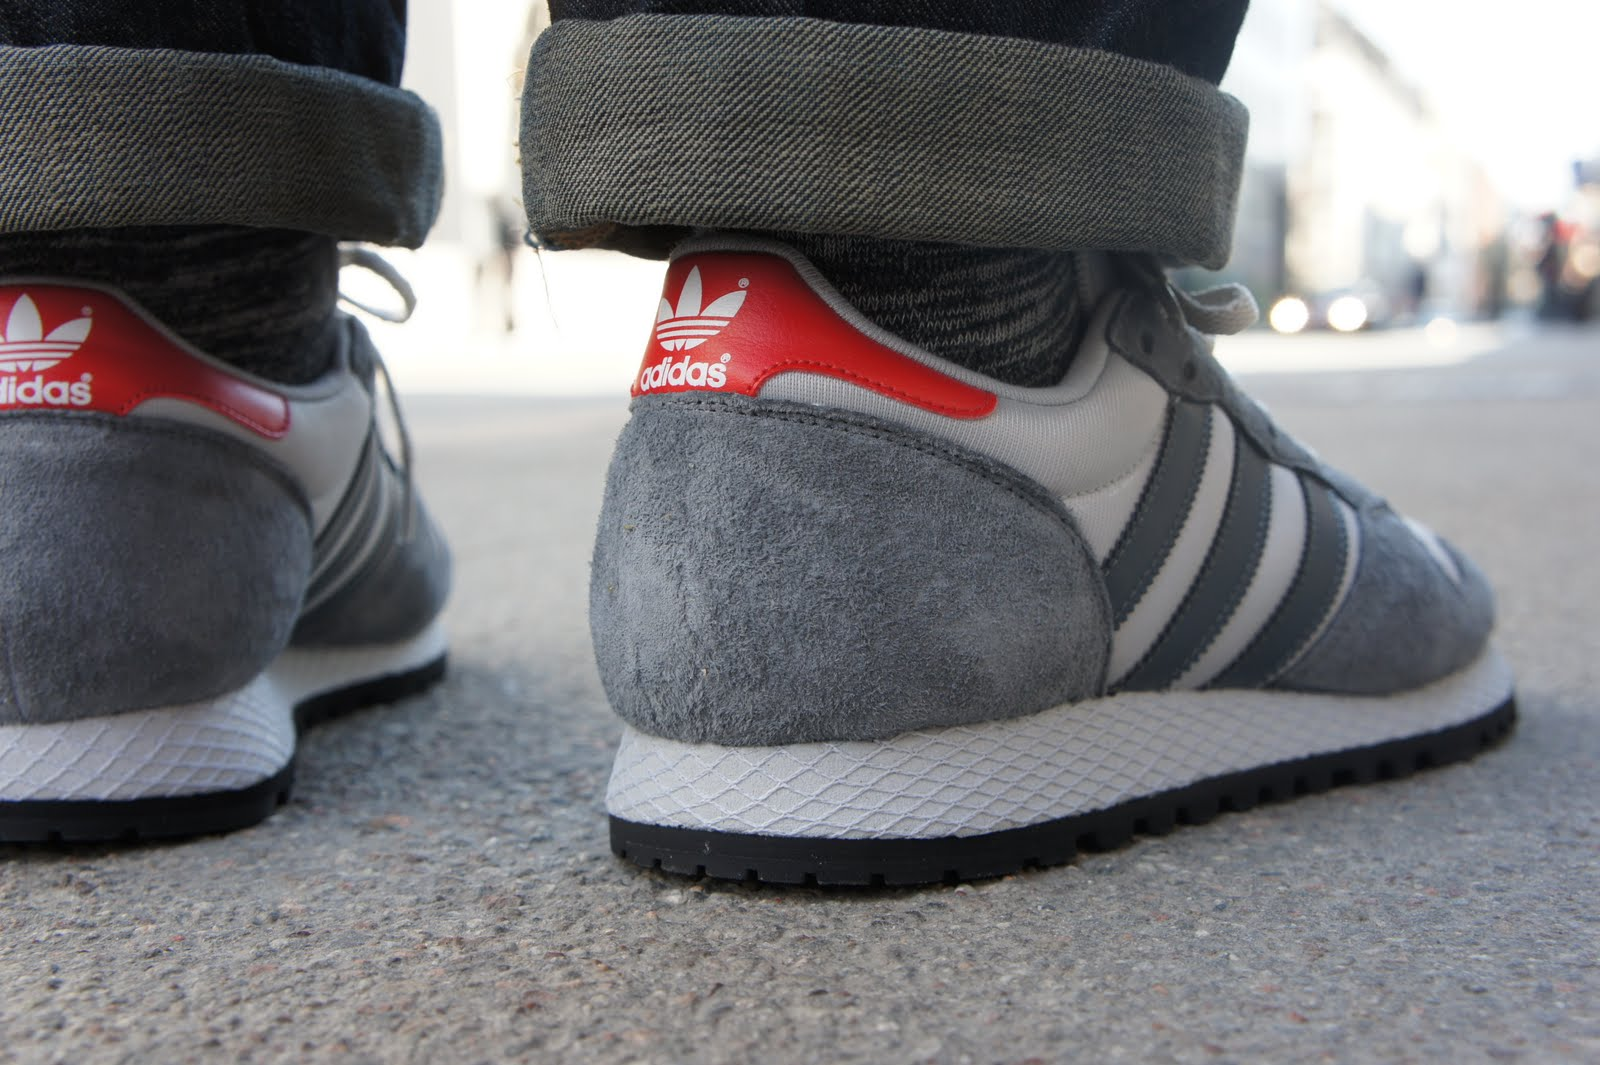 207a2baed The Caliroots Blog  Adidas ZX 380 Unisex retro runners!